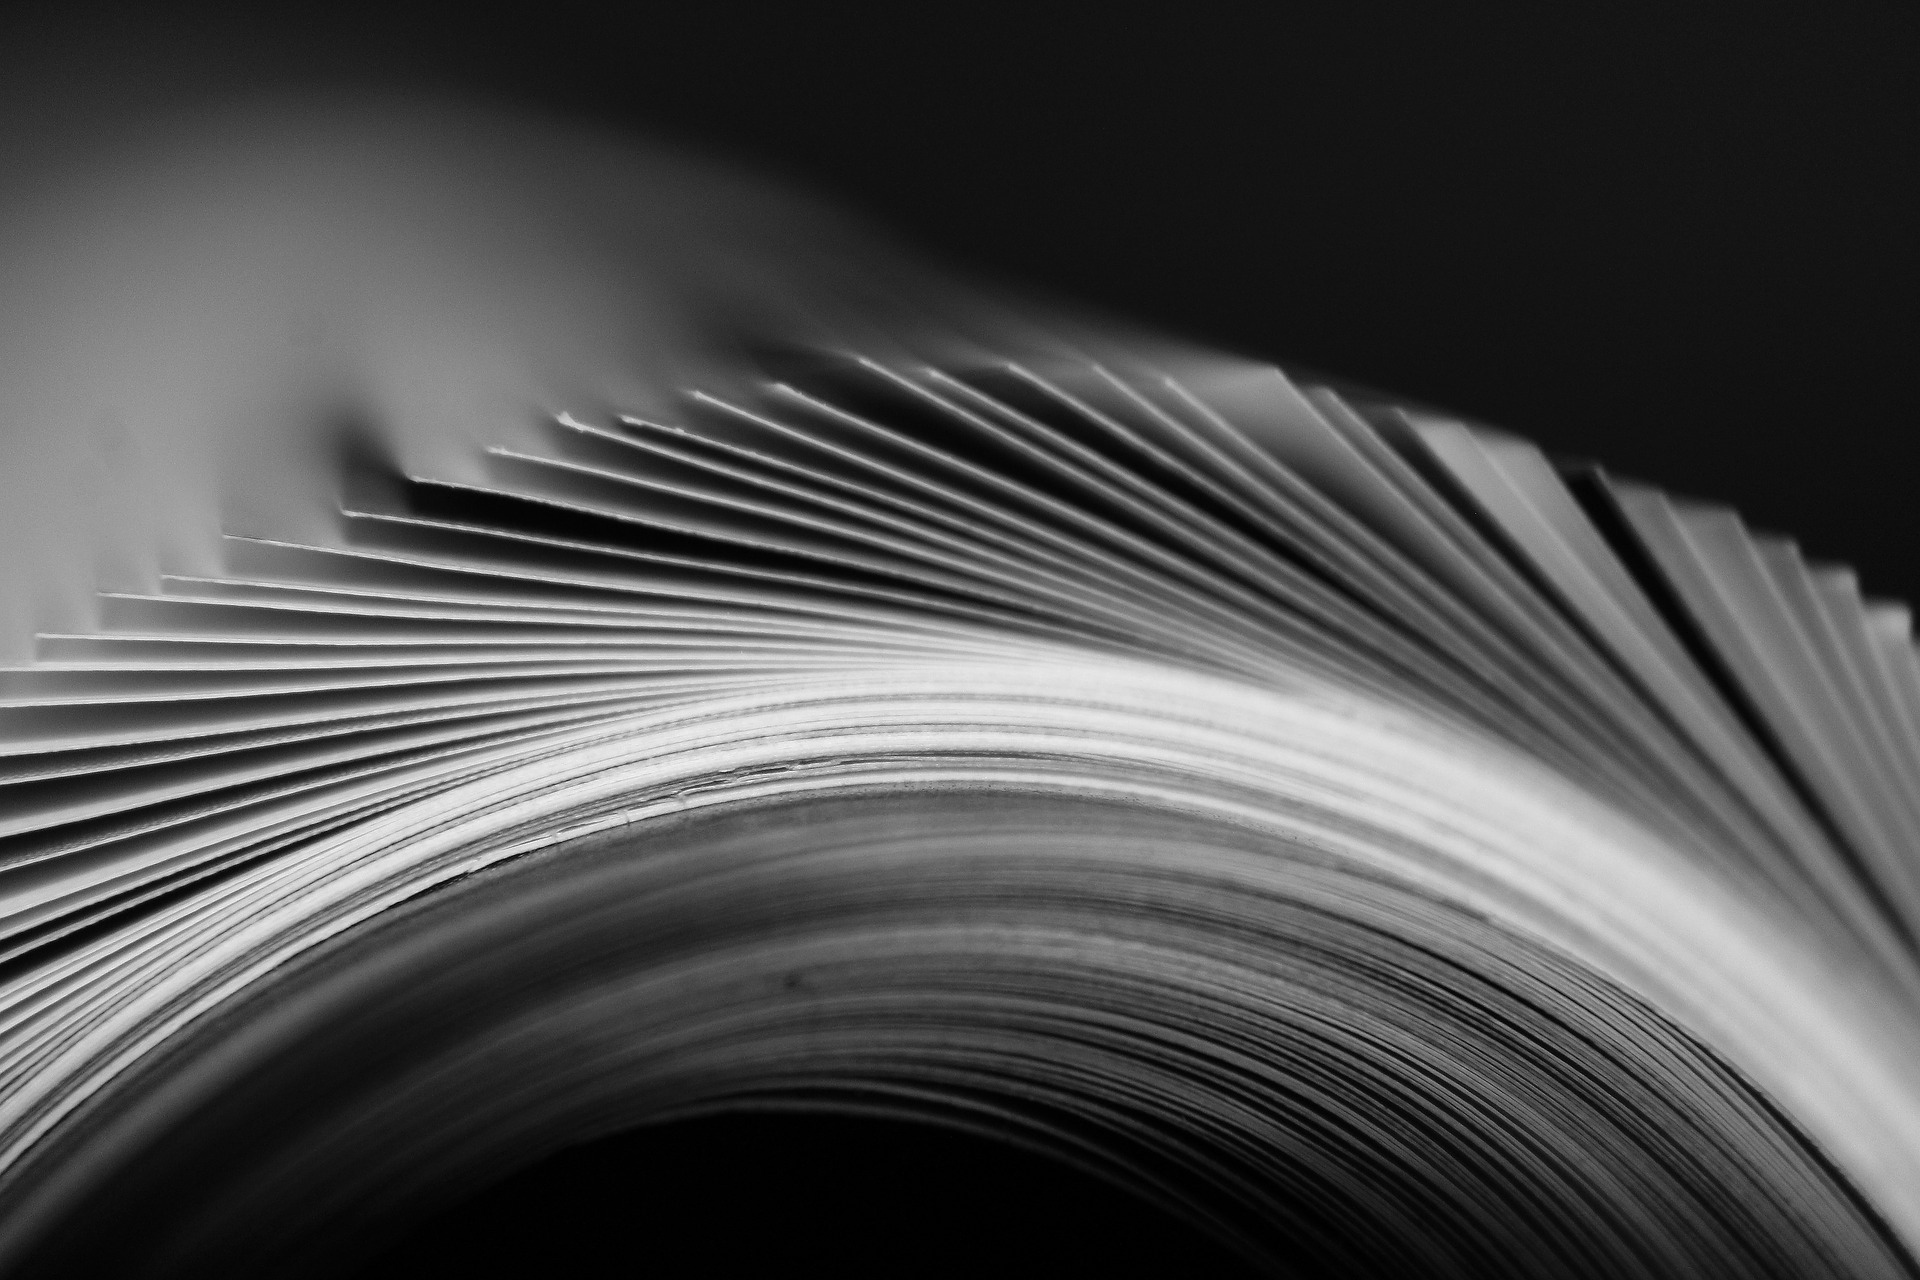 picture of pages flipping in a book publication